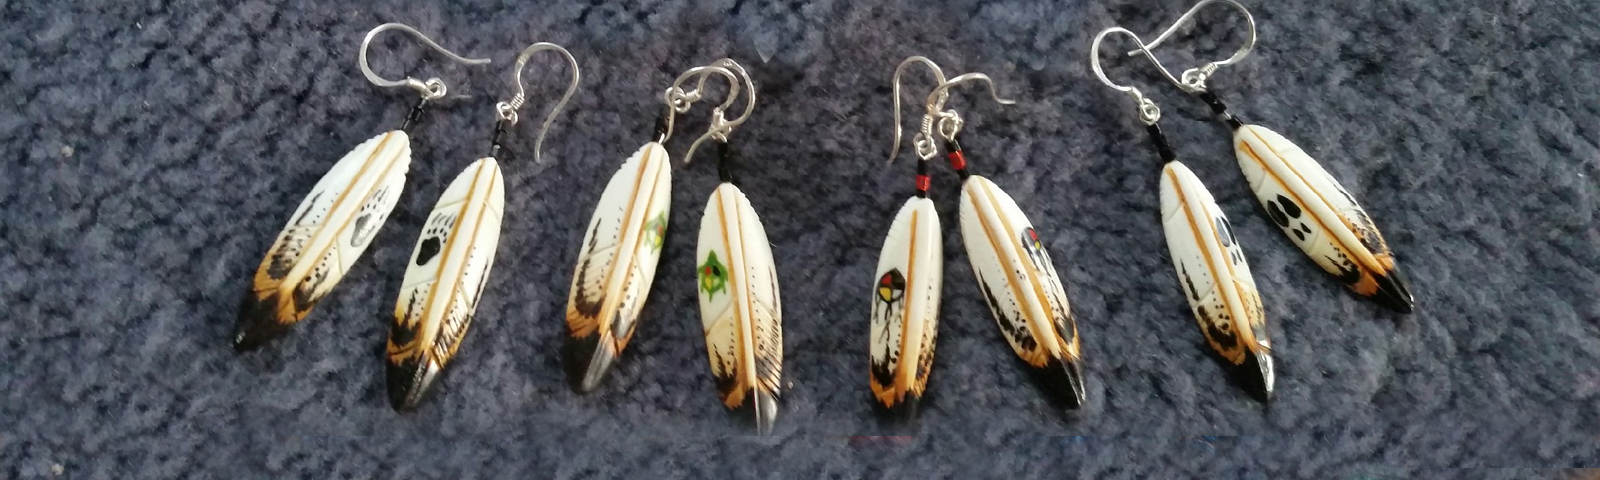 Neuway Jewelers Handmade Sterling Silver Jewelry With Real Gemstones Bone Carved Feather Jewelry